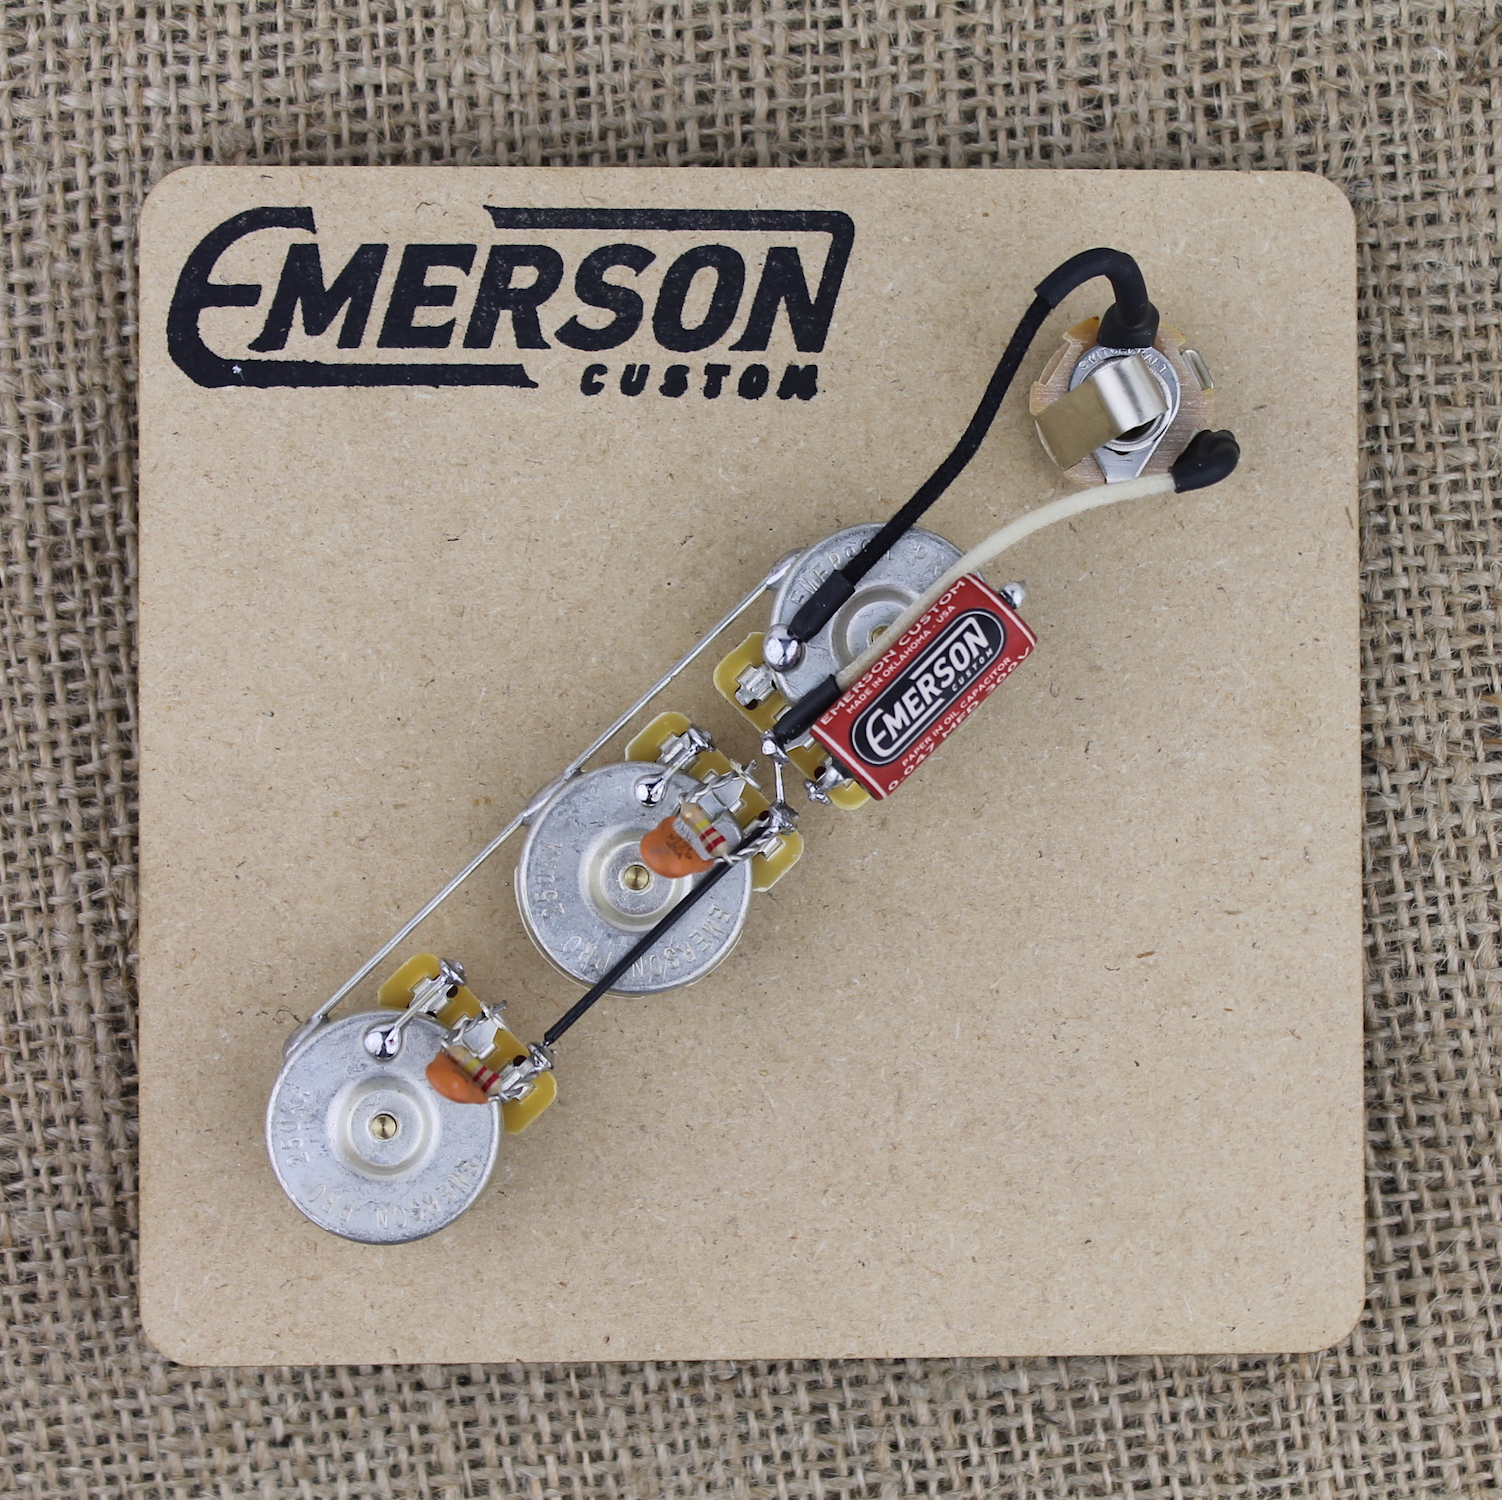 Emerson Custom Jazz Bass Prewired Assembly Guitarbox Way Switch Wiring Diagram On Guitar 3